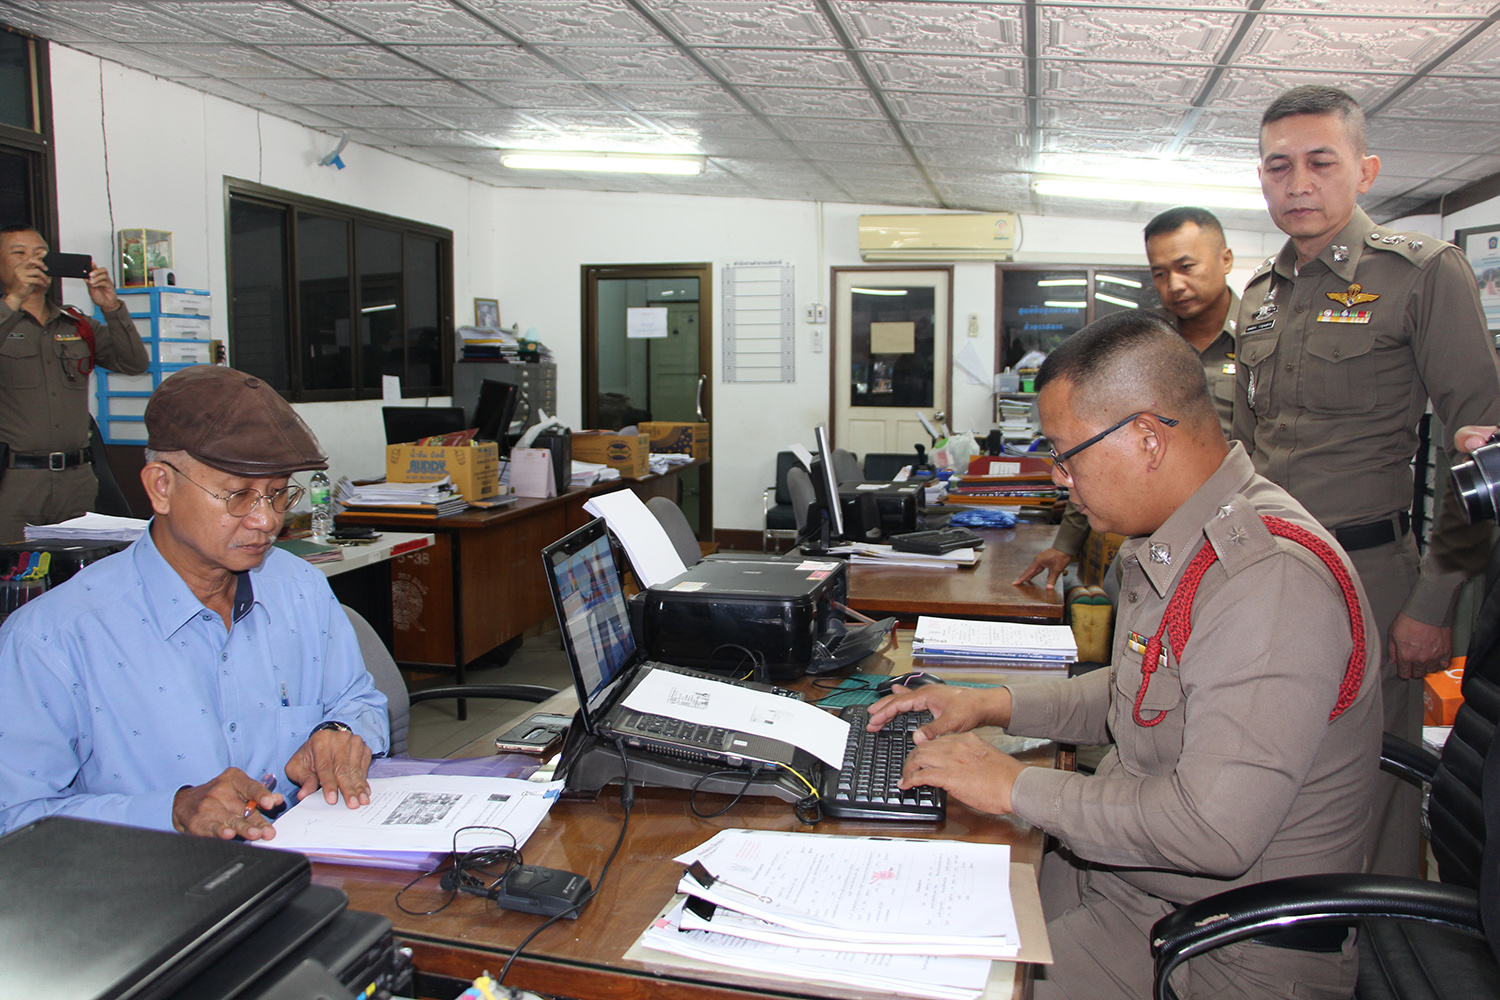 Veera Somkwamkid, secretary-general of the People's Network Against Corruption, files a   complaint at  Chom Bung police station against Palang Pracharath Party MP Pareena Kraikupt over her landholdings in Ratchaburi. (Photo by Saichon Ochkajon)